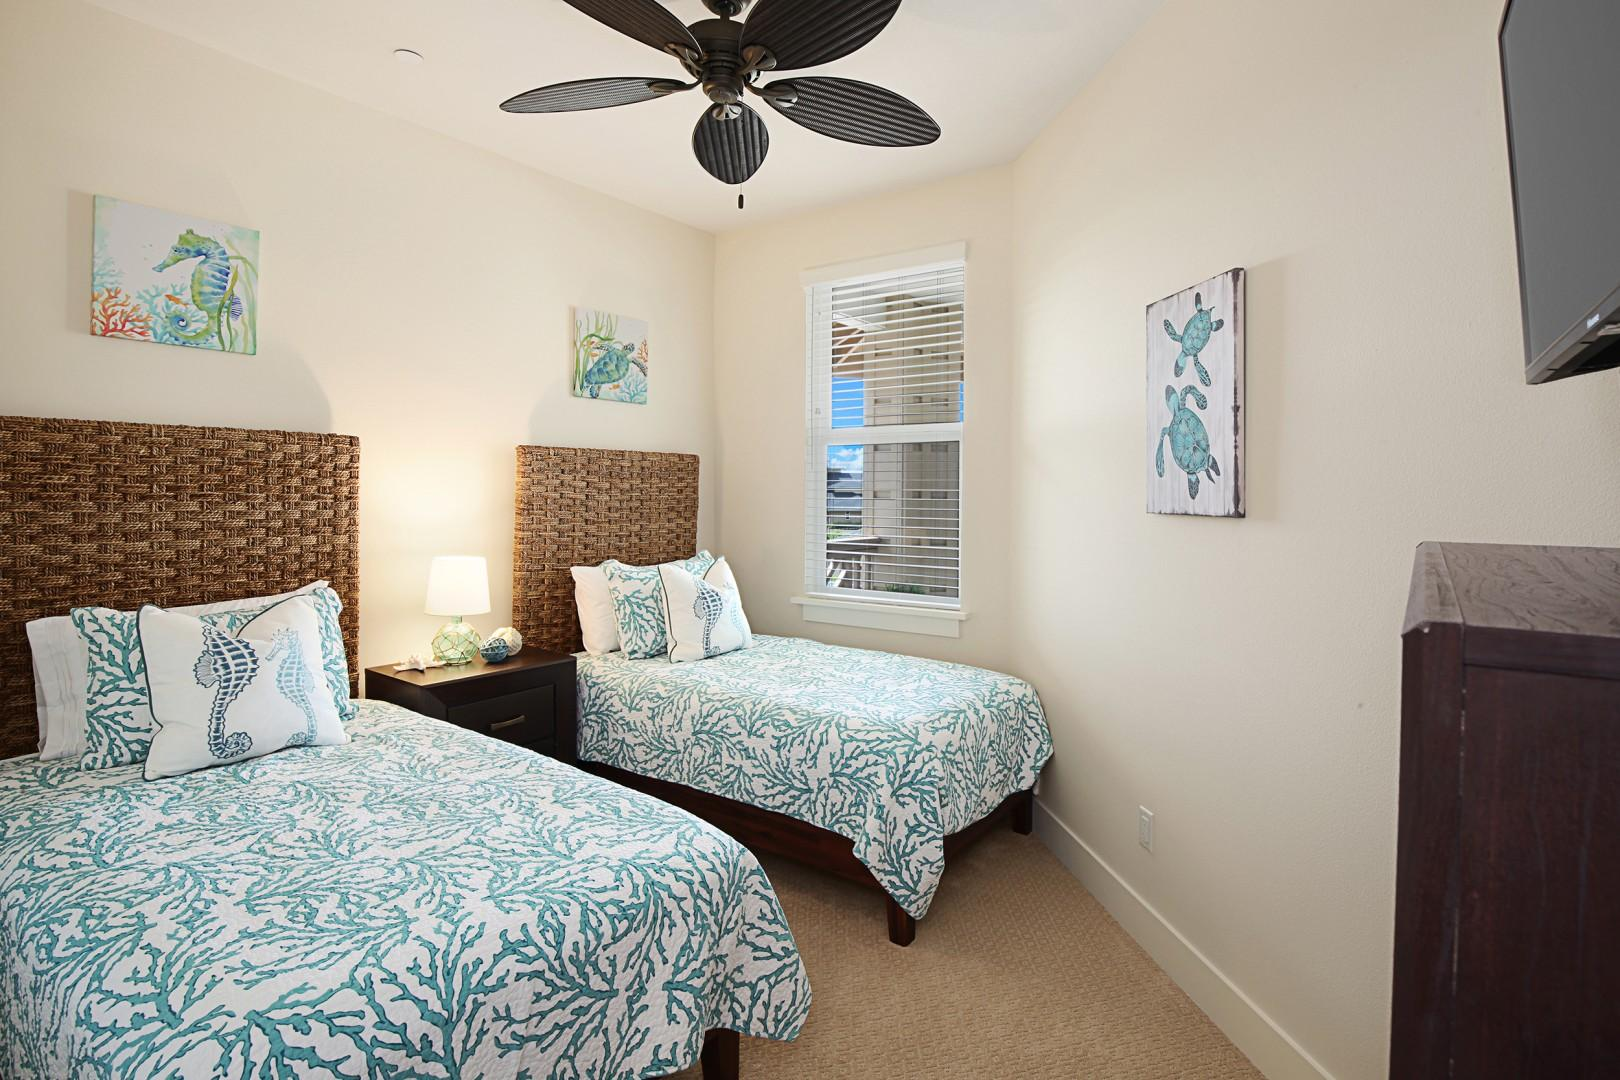 Twin bedroom with option to convert twins to king bed